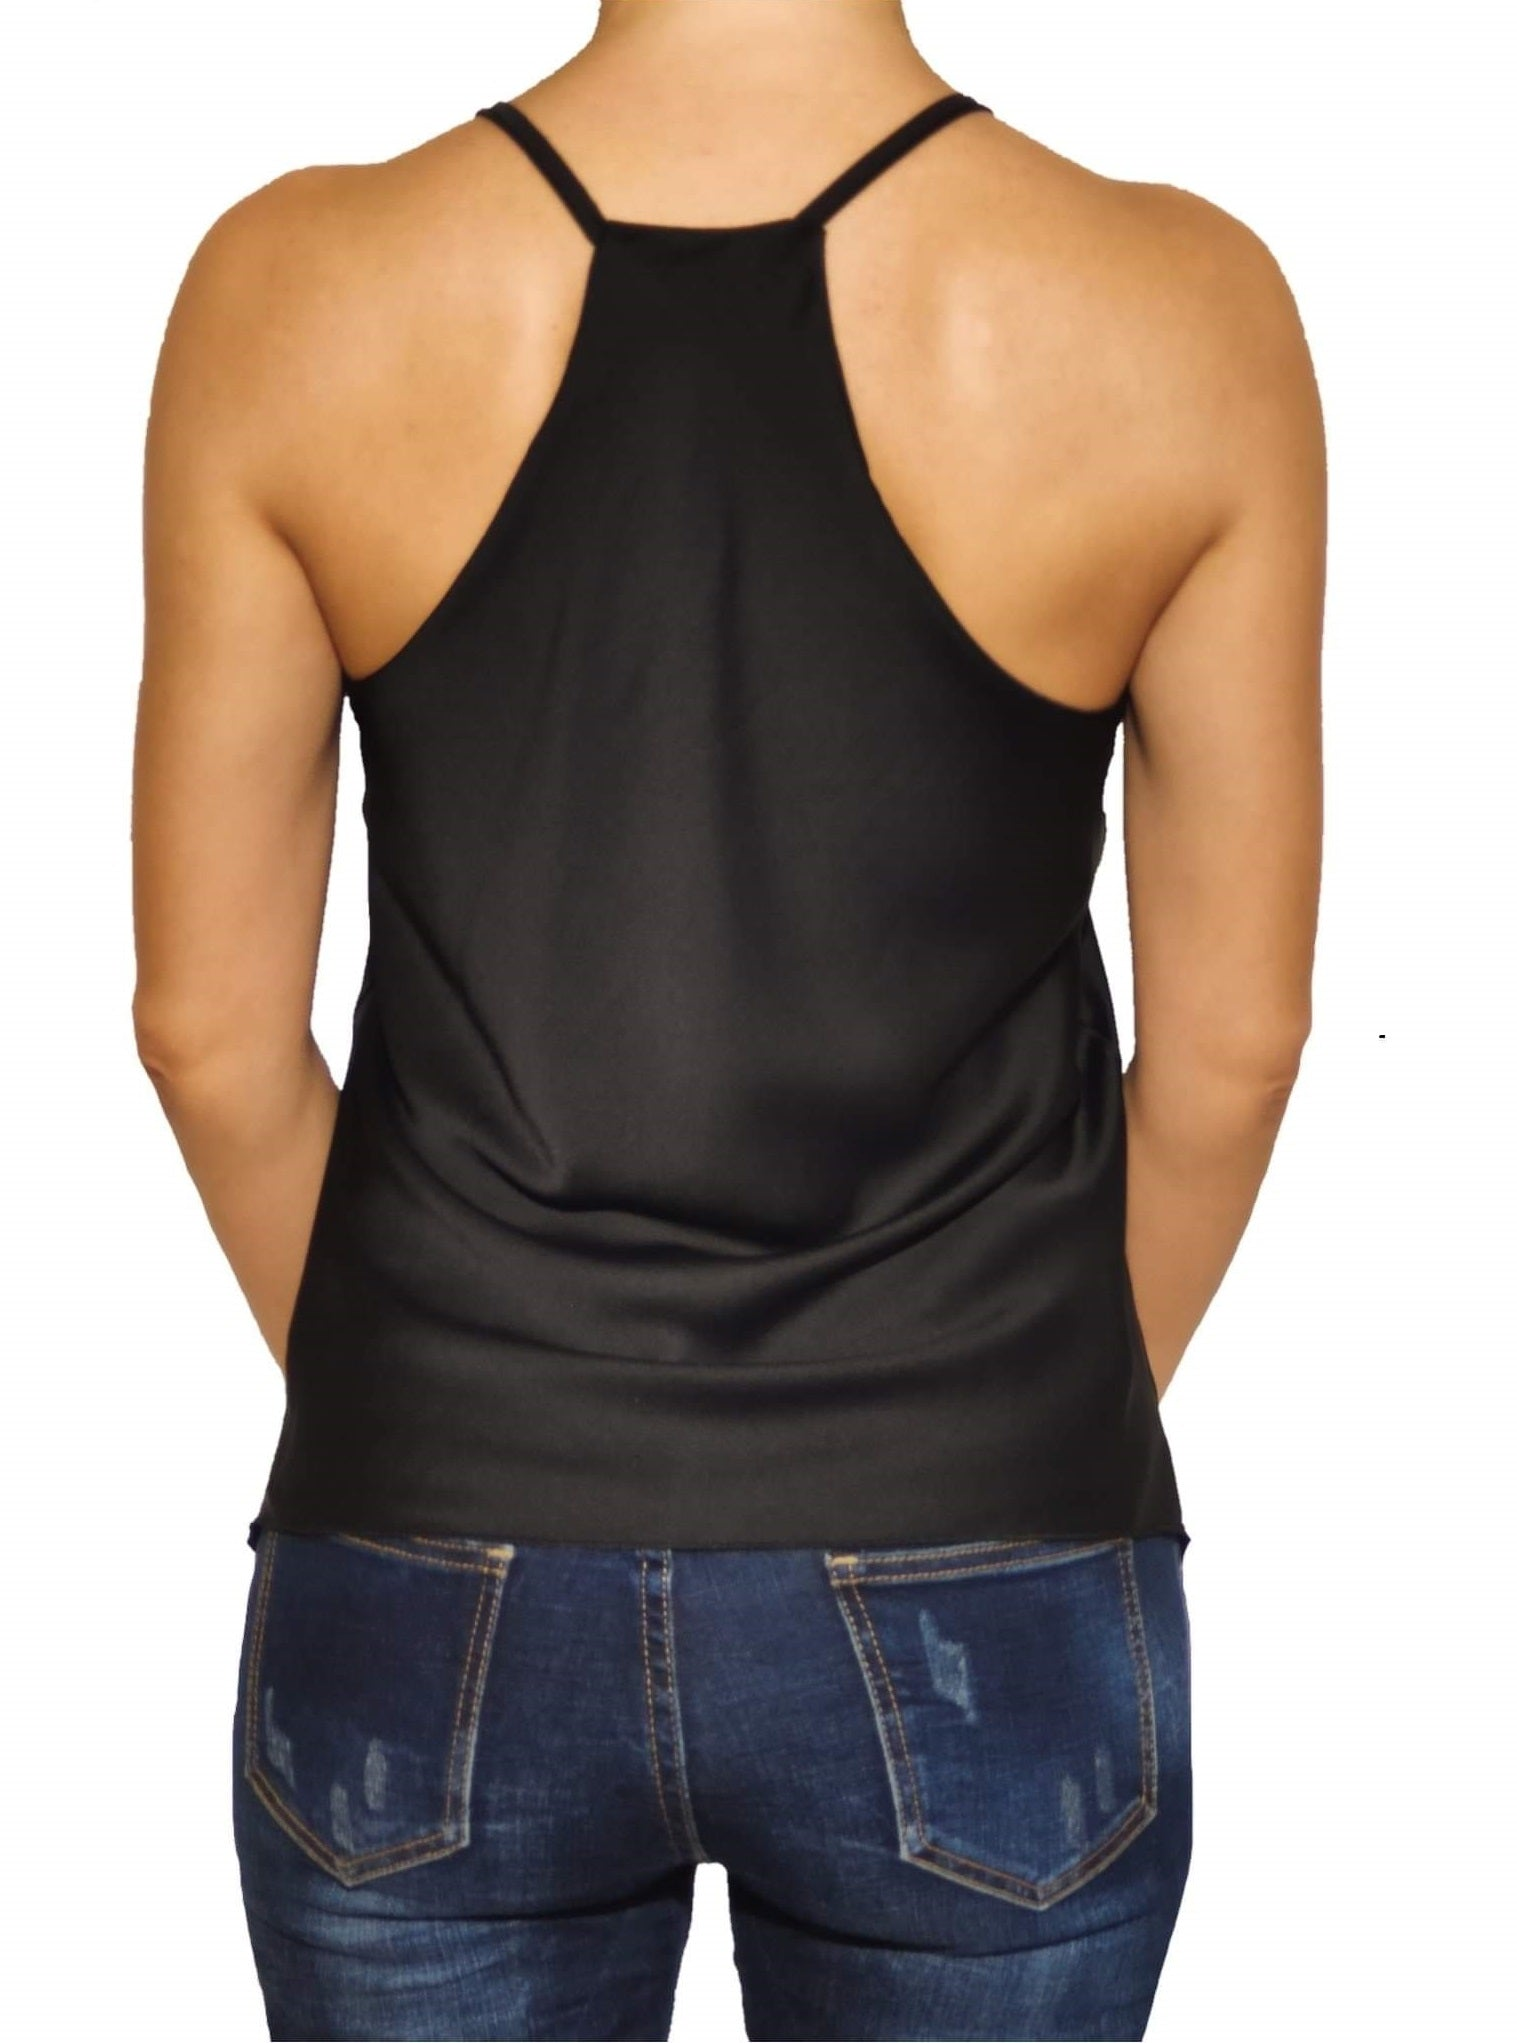 woman-wears-sleeveless-top-black-backside